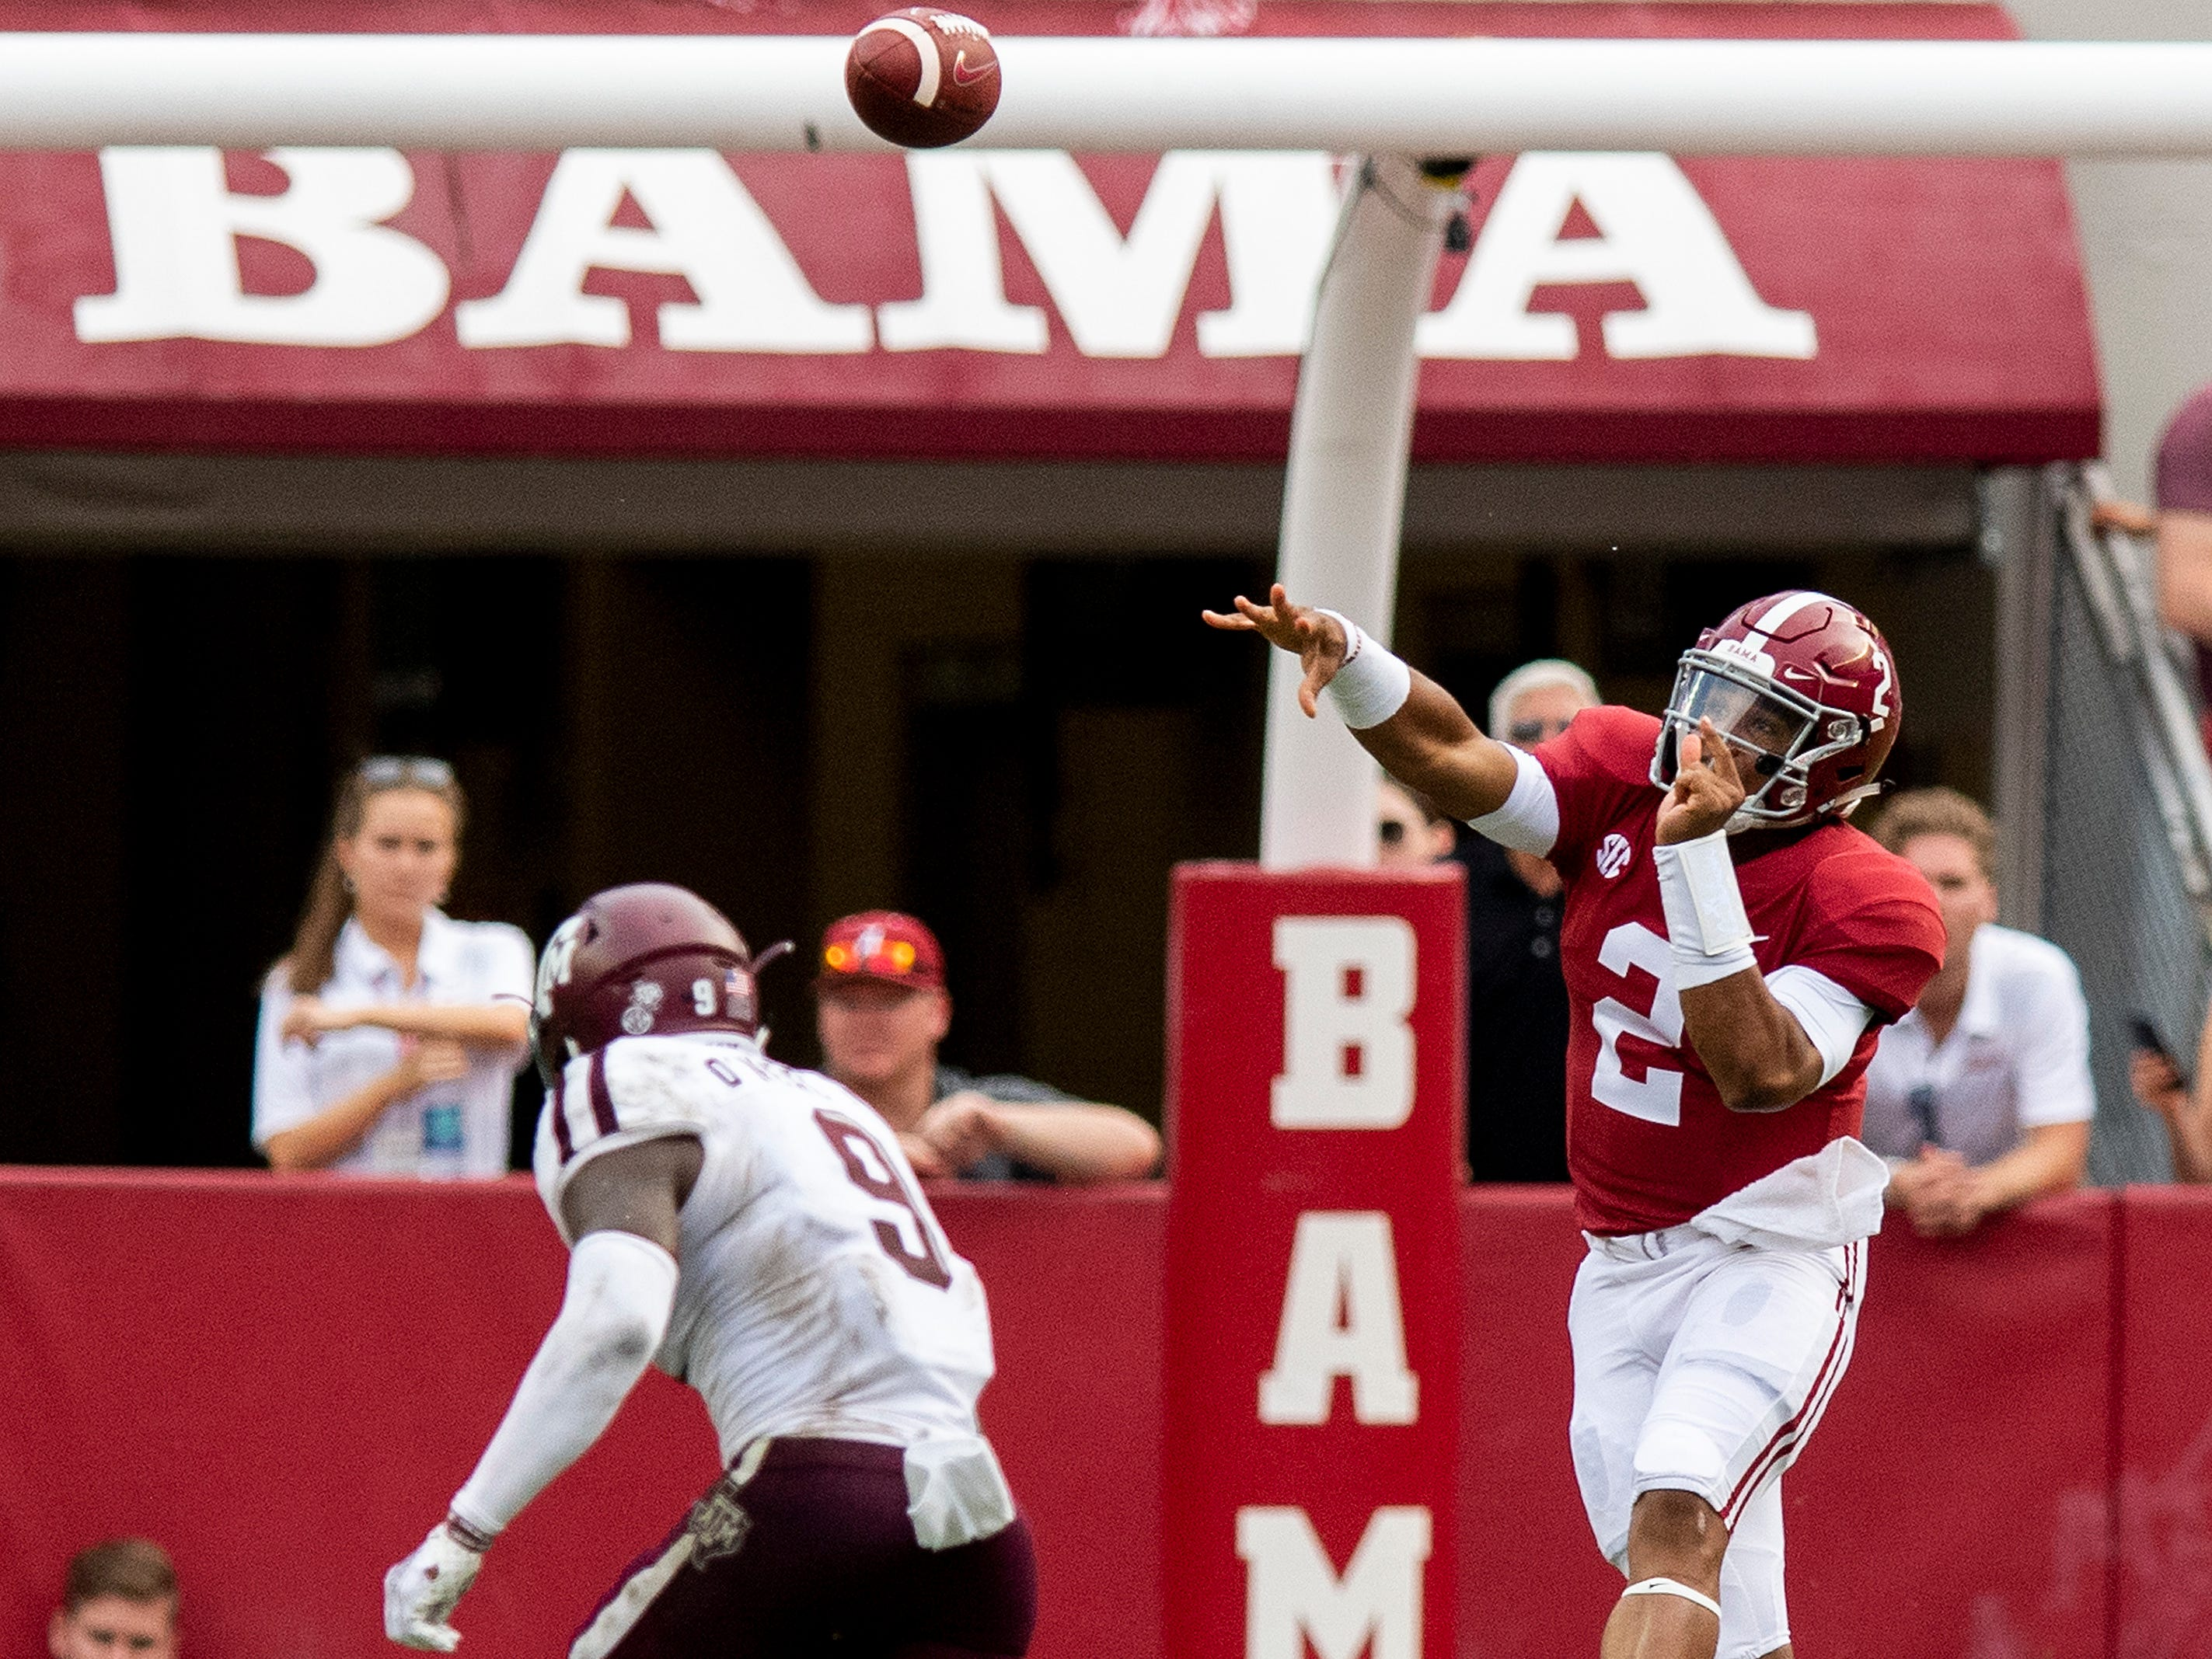 Alabama quarterback Jalen Hurts (2) throws against Texas A&M in second half action in Tuscaloosa, Ala., on Saturday September 22, 2018.